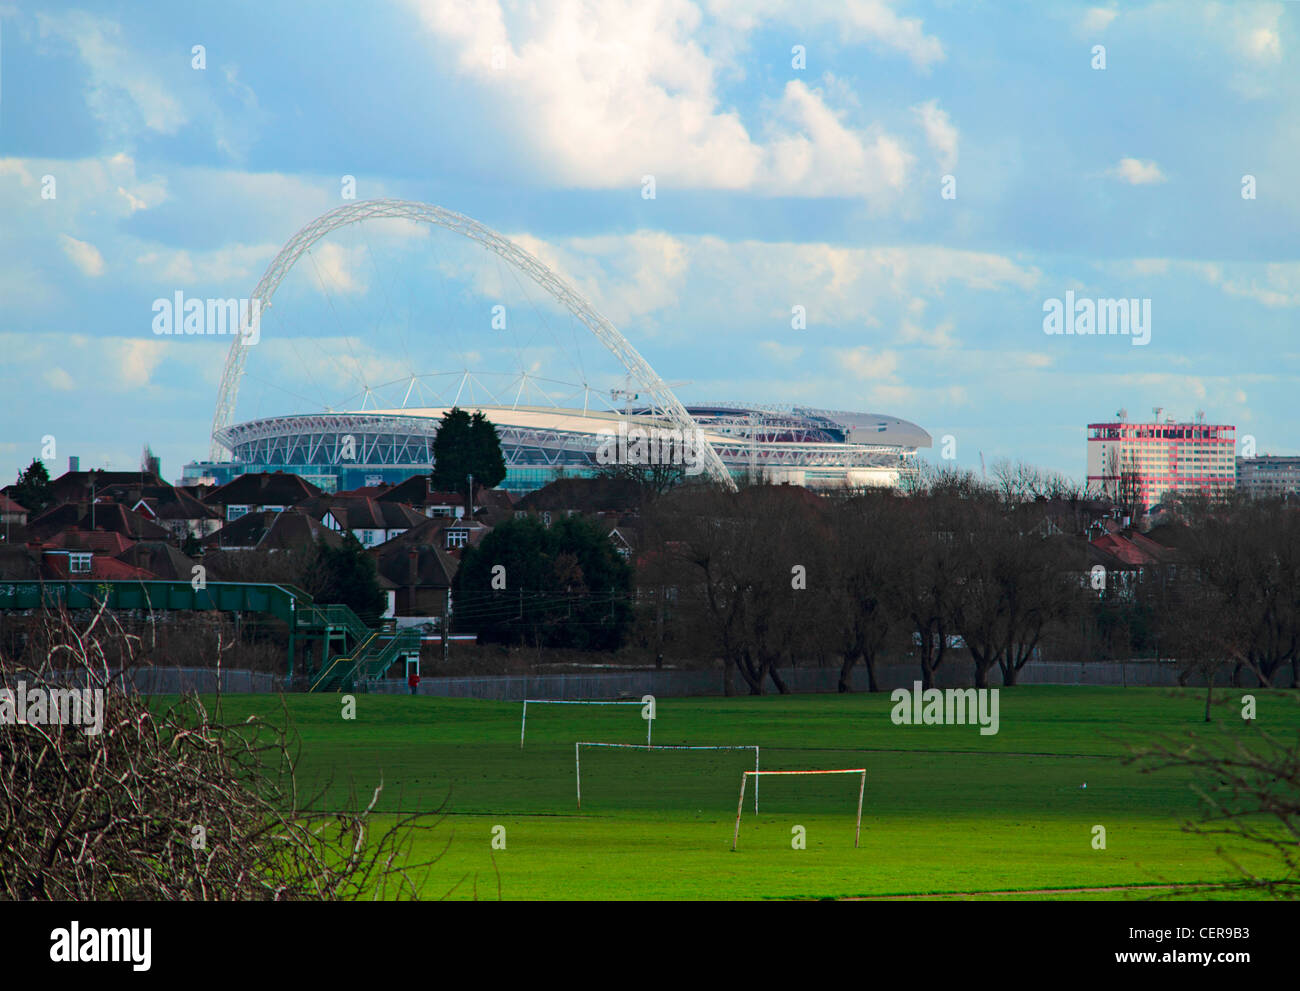 Wembley stadium dominating the skyline of north west London seen from Northwick Park. - Stock Image